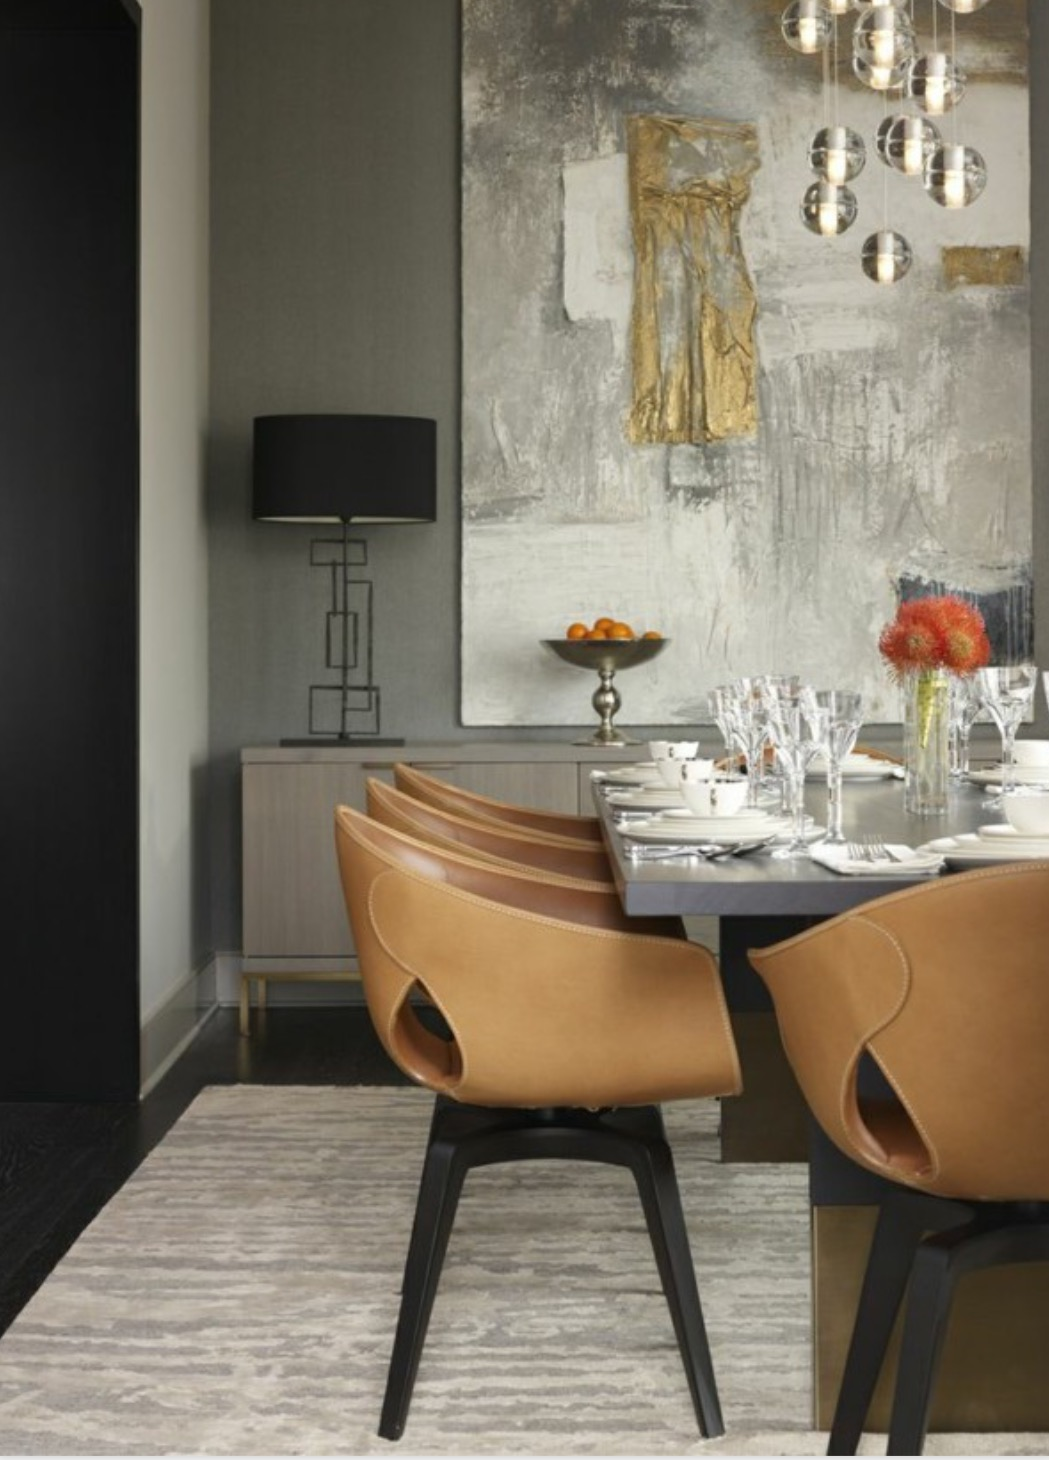 Tara-Art-Studio-Dining-Room-Decor